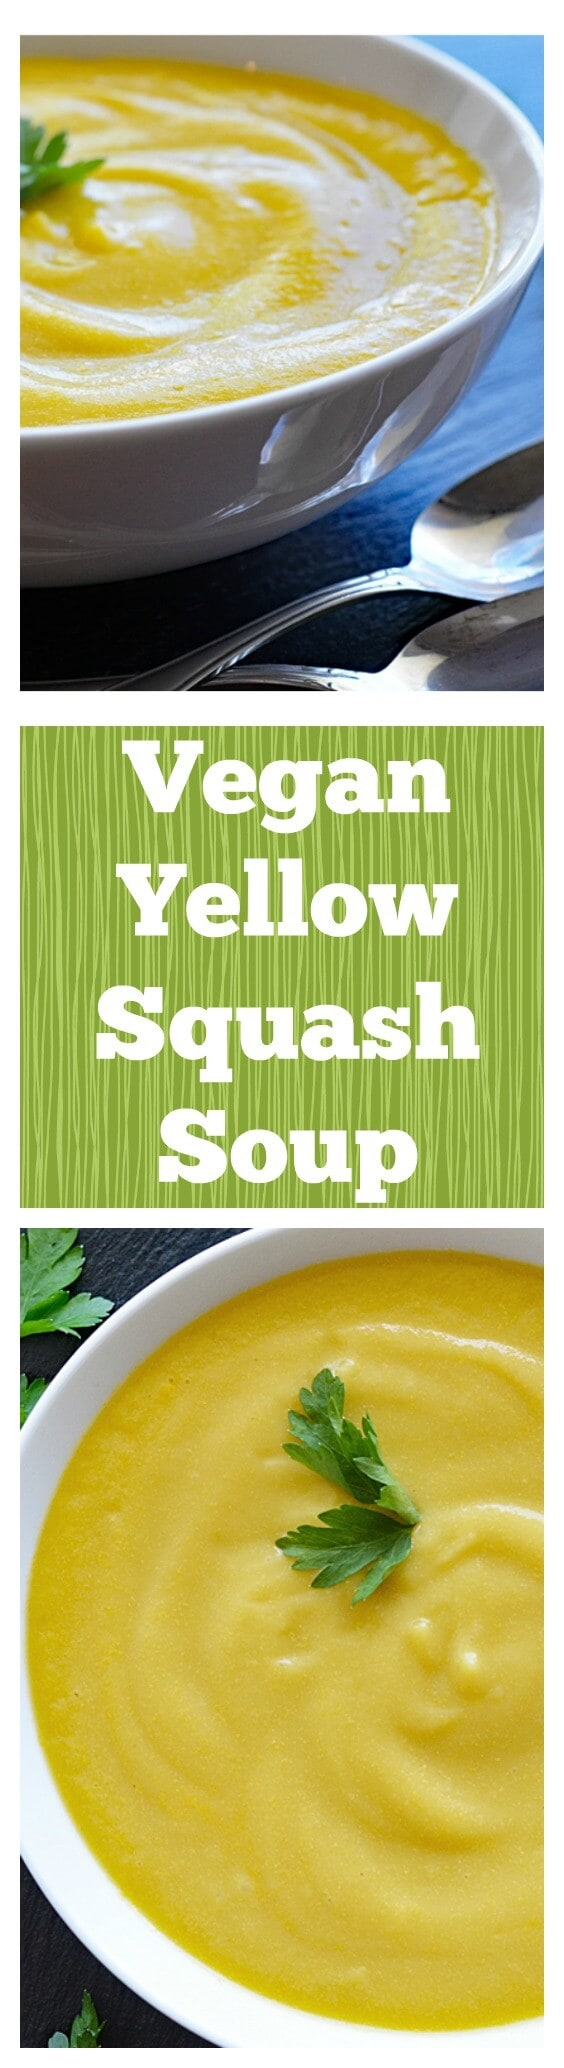 Vegan Yellow Squash Soup PINTEREST IMAGE